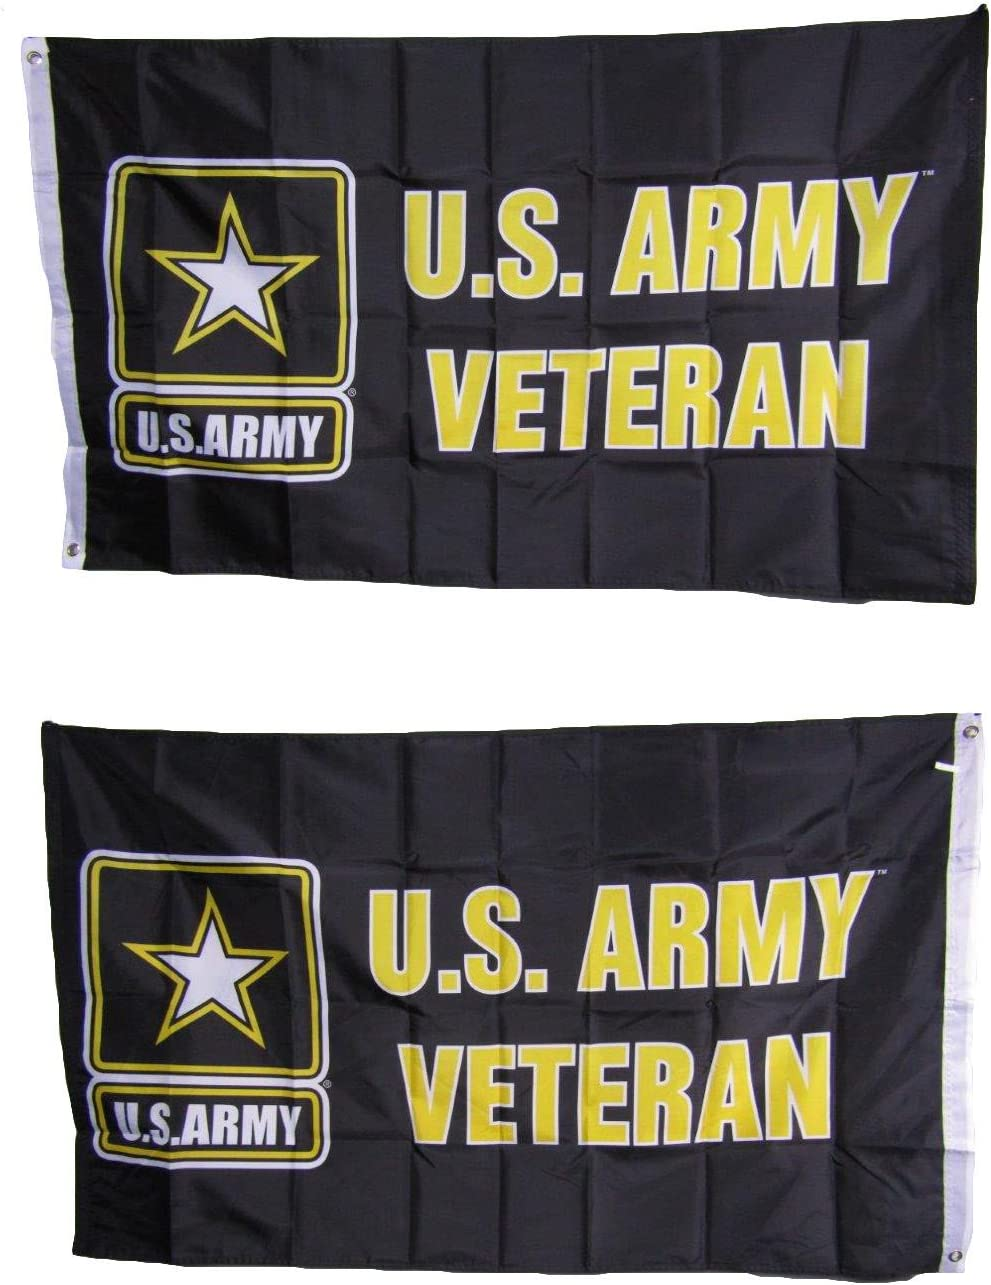 3x5 U.S. Army Veteran Star Heavy Duty Polyester Nylon 200D Double Sided Flag Grommets House Banner Double Stitched Fade Resistant Premium Quality